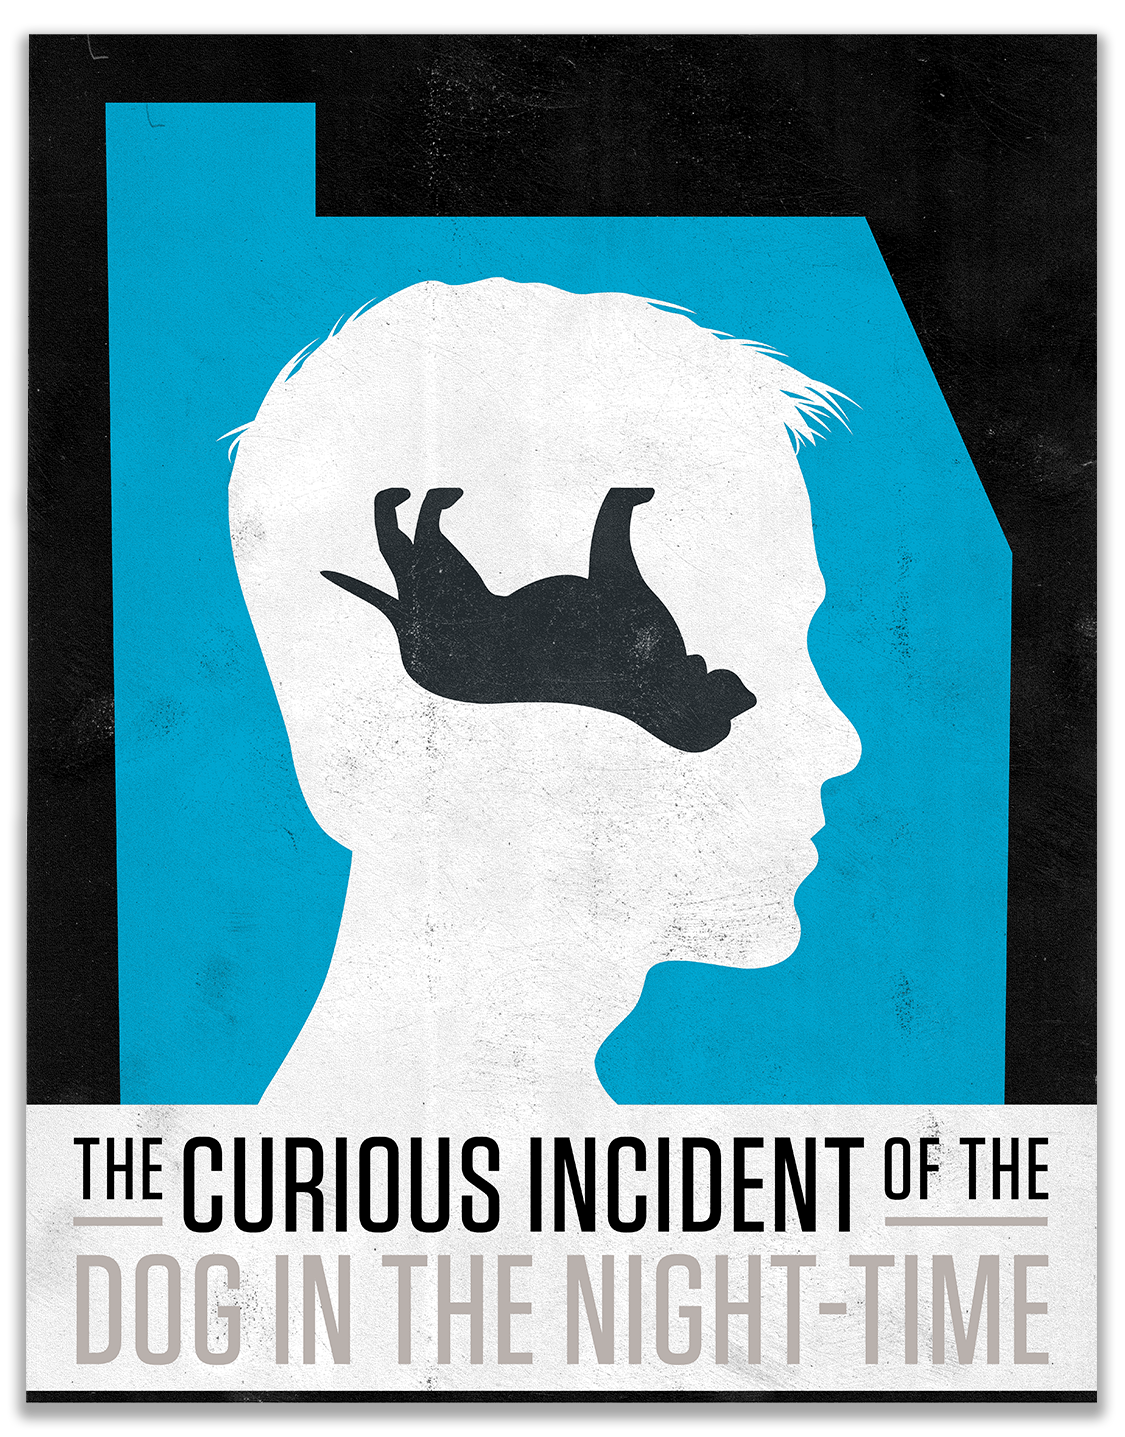 curious incident of the dog in the nighttime essays Curious incident of the dog in the night-time: depiction of aspergers syndrome essay  novels depiction of asperger's syndrome the story the curious incident of the dog in the night-time, written by mark haddon, is a story about a young boy with growth from childhood into adulthood - curious incident of the dog in the night-time: depiction of aspergers syndrome essay introduction.